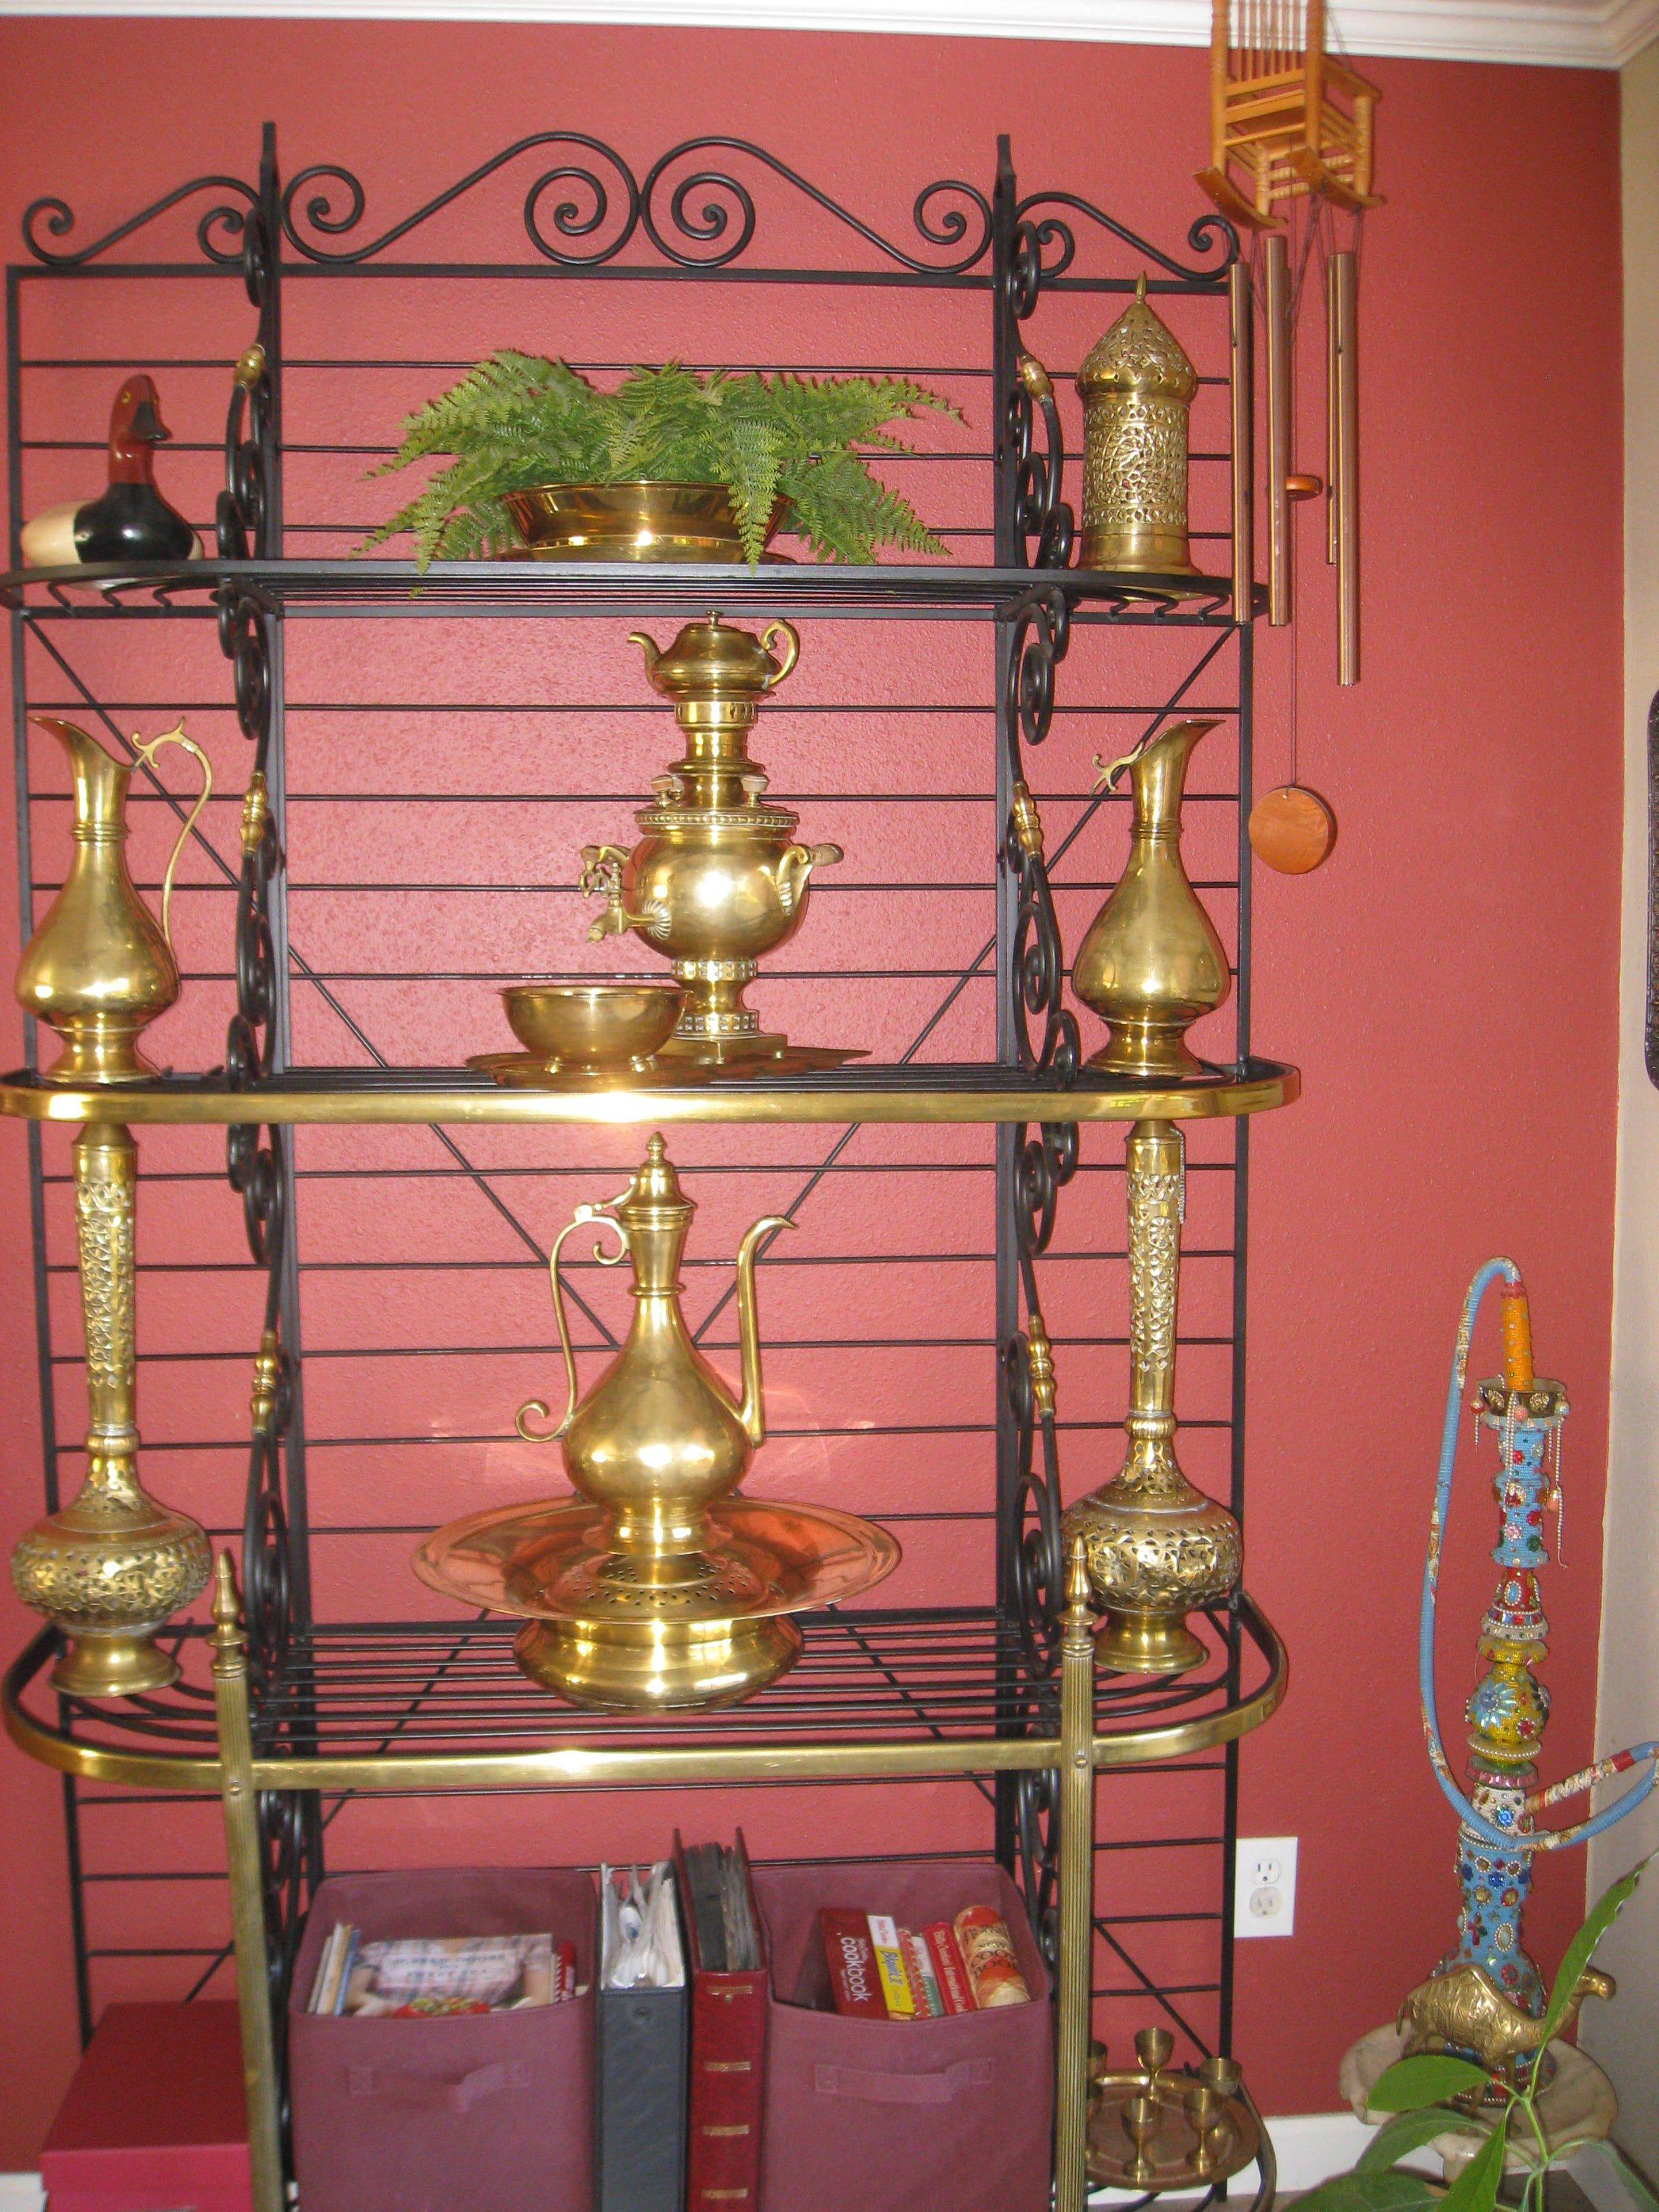 Brass hookah from iran with images home decor decor